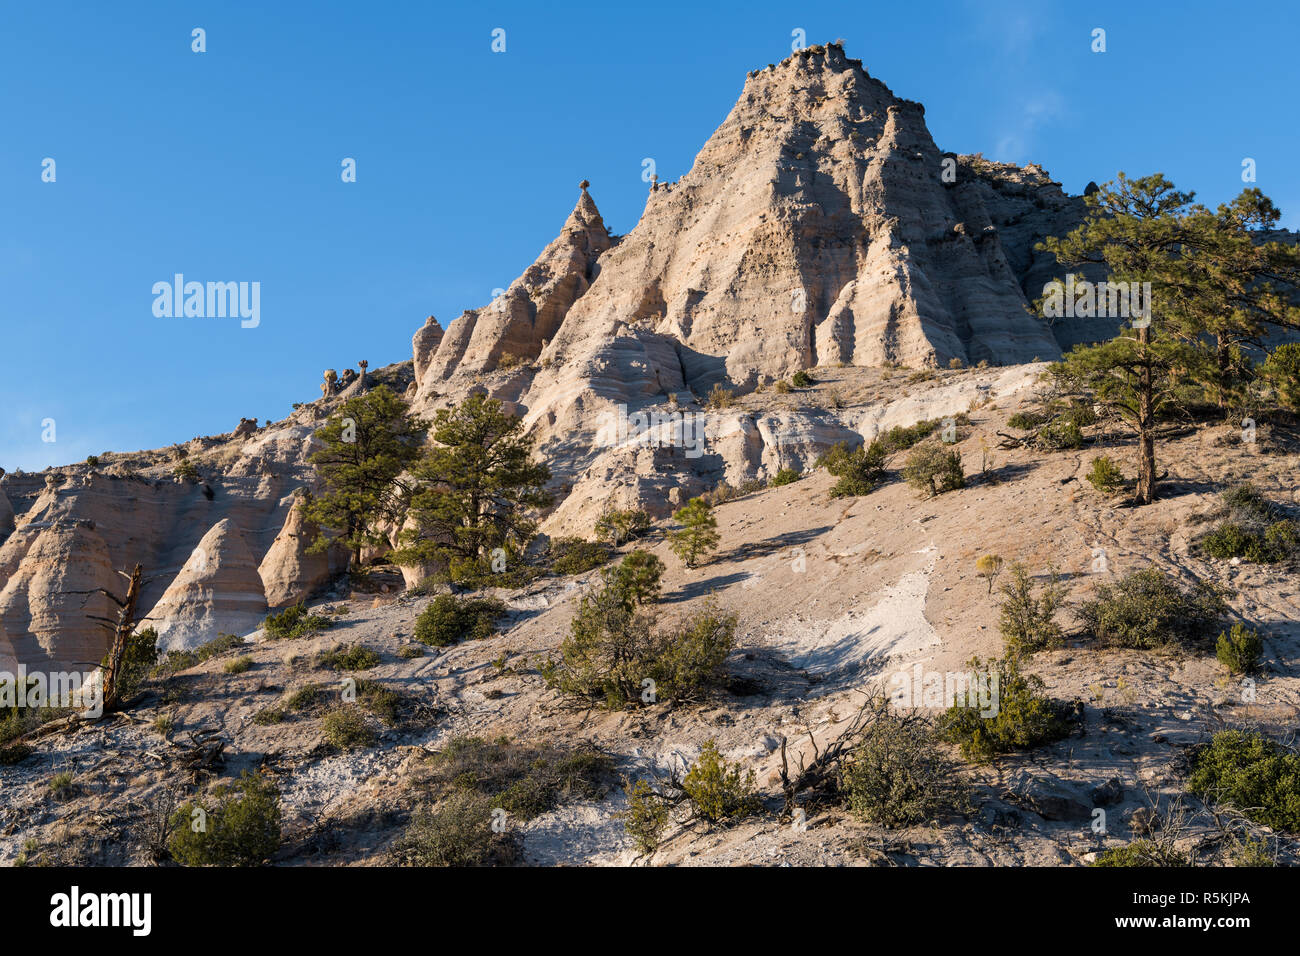 High, steep mountain peak with hoodoo rock formations and ponderosa pine trees at Kasha-Katuwe Tent Rocks National Monument, New Mexico - Stock Image